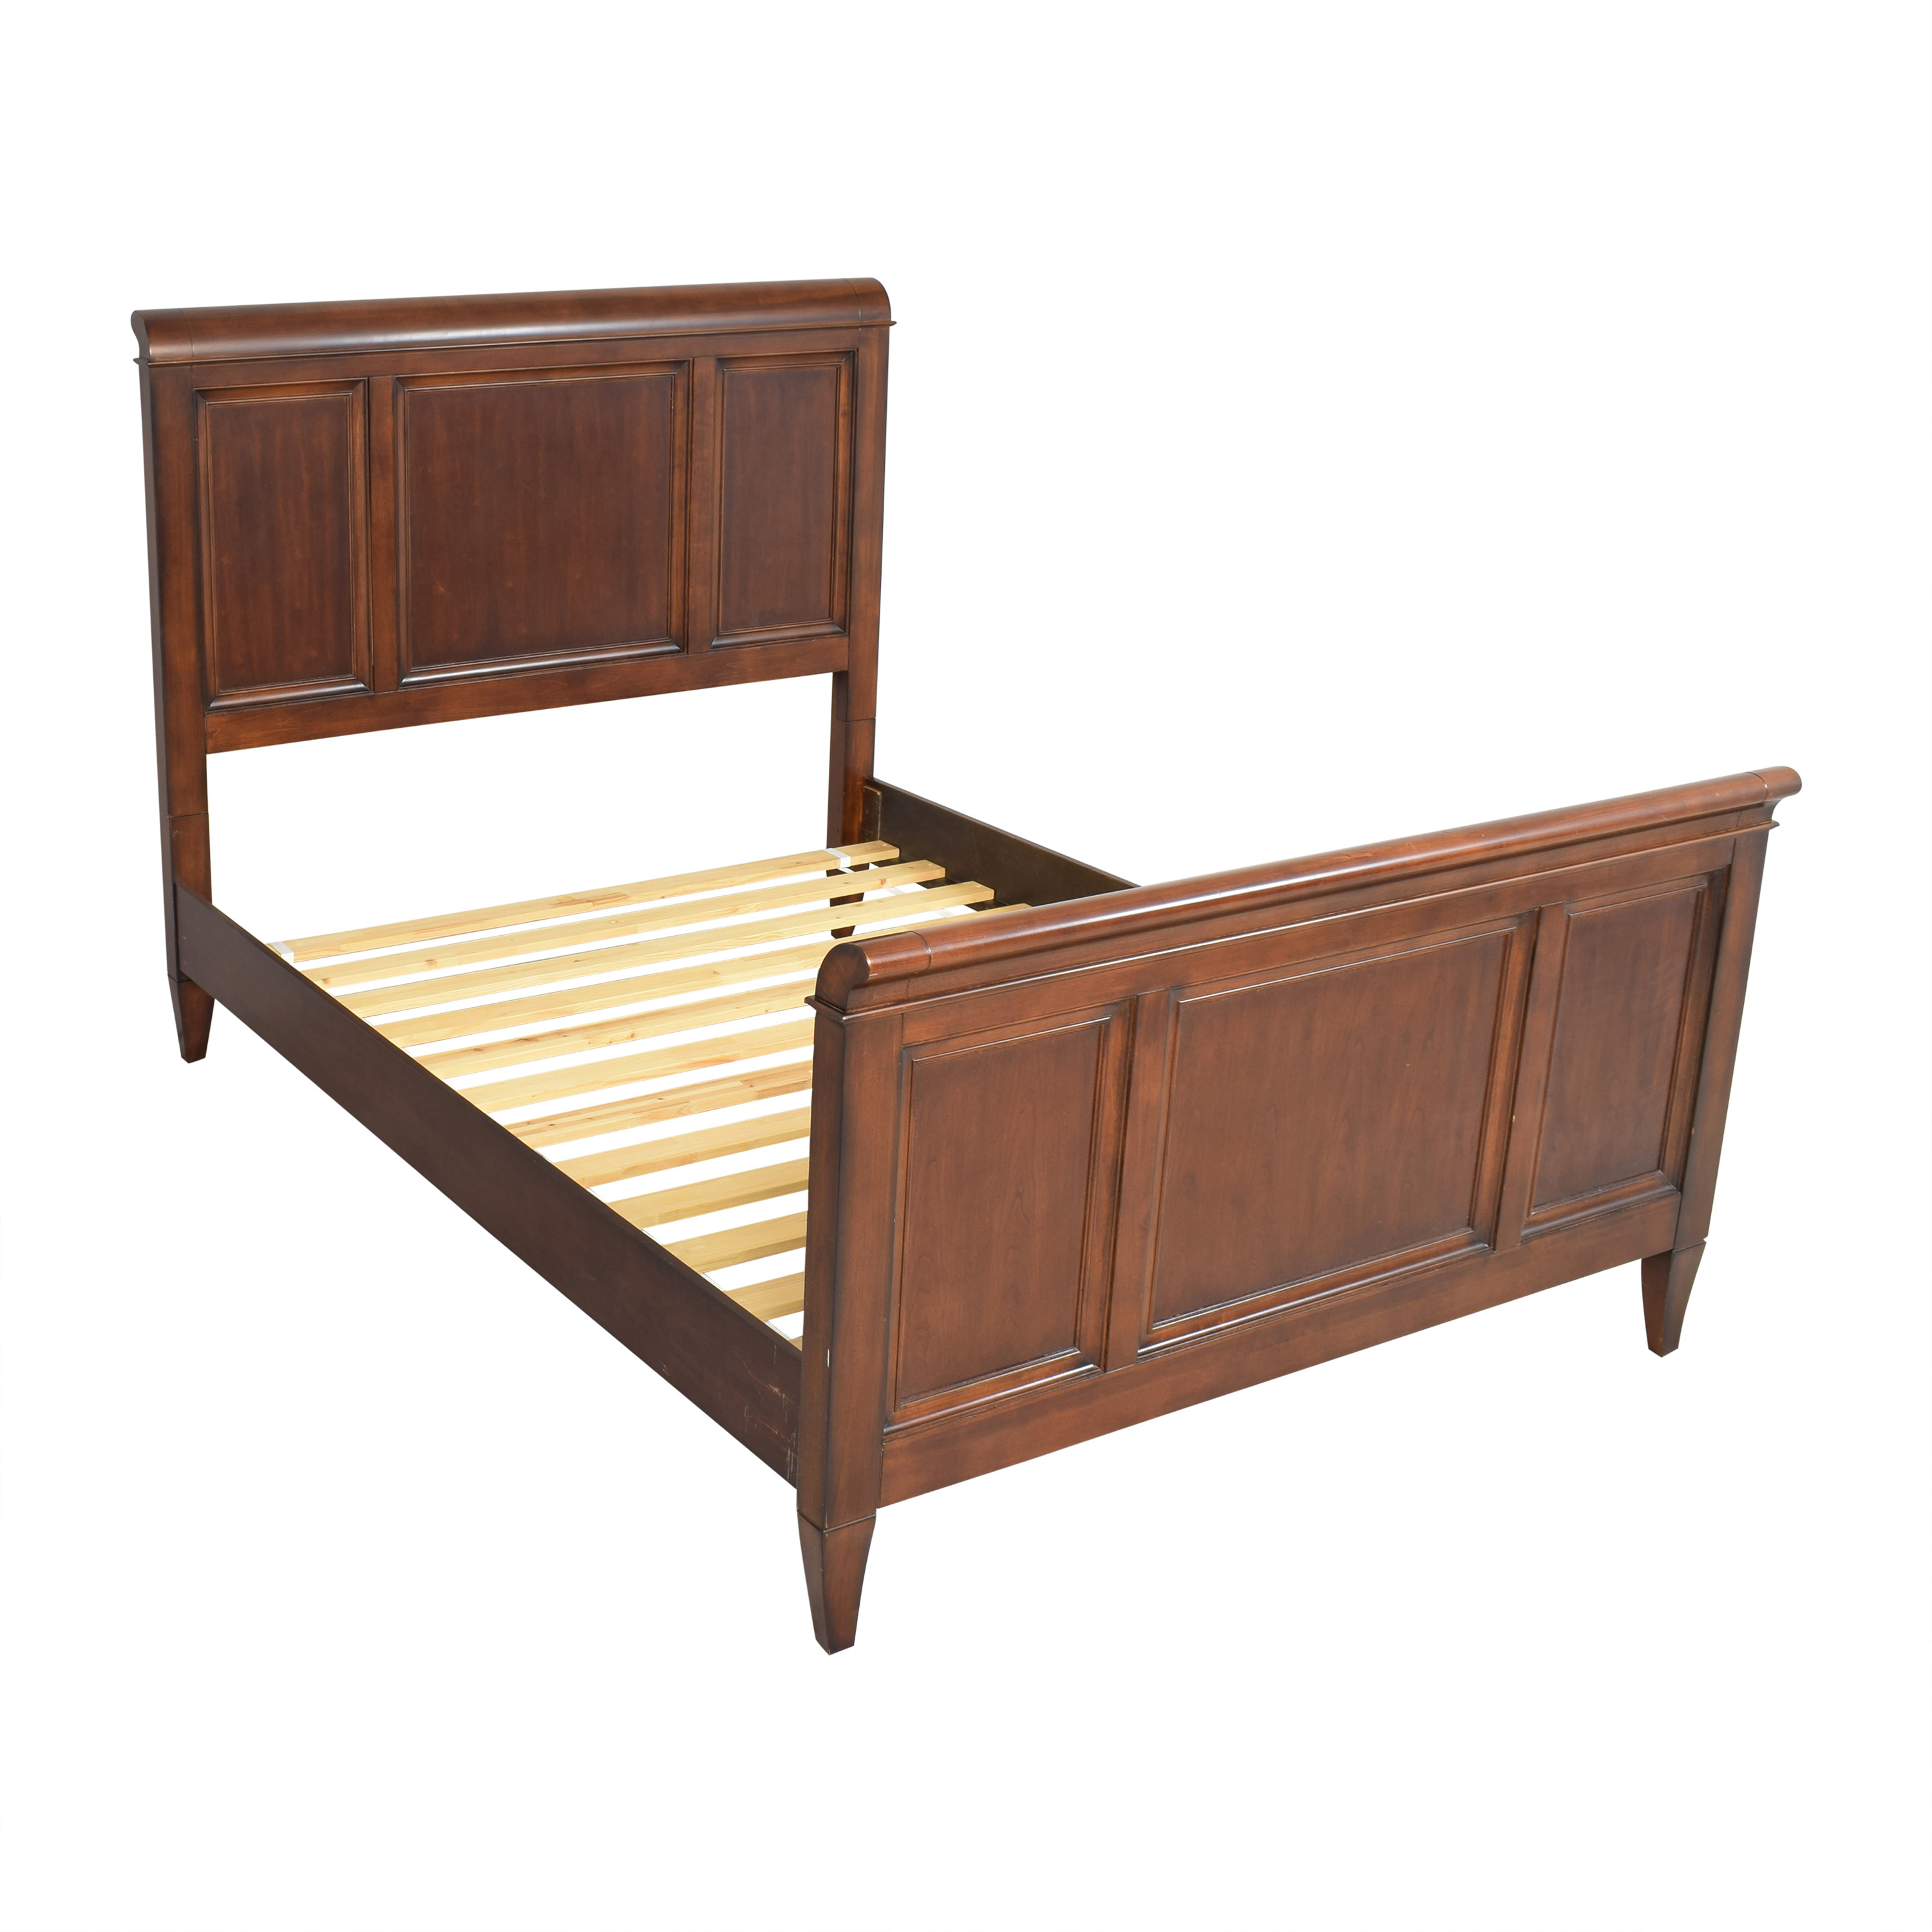 Flexsteel Flexsteel Wynwood Furniture Westhaven Queen Panel Bed second hand